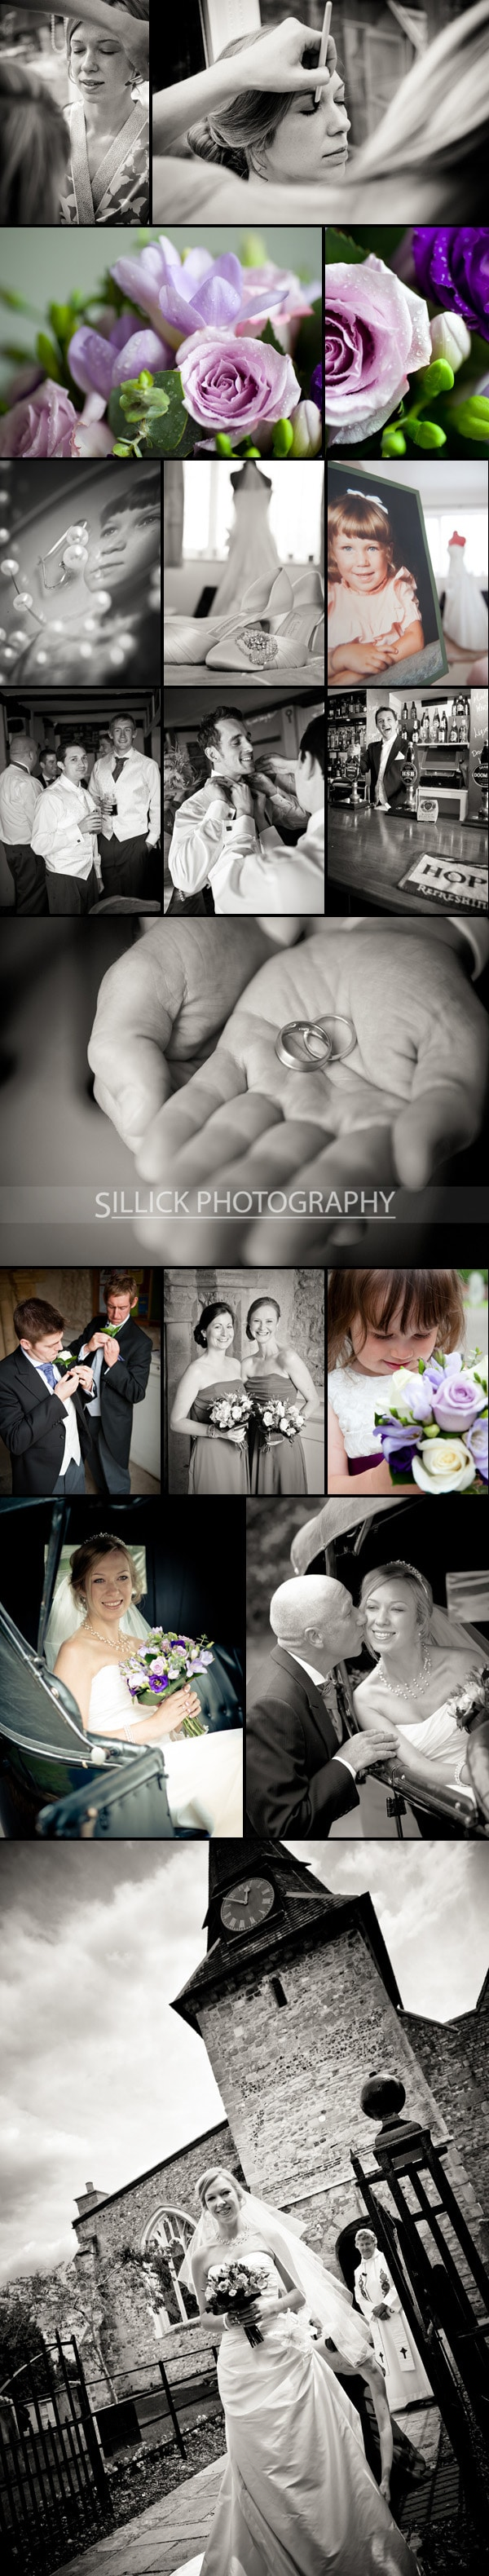 Hill Place Swanmore Wedding